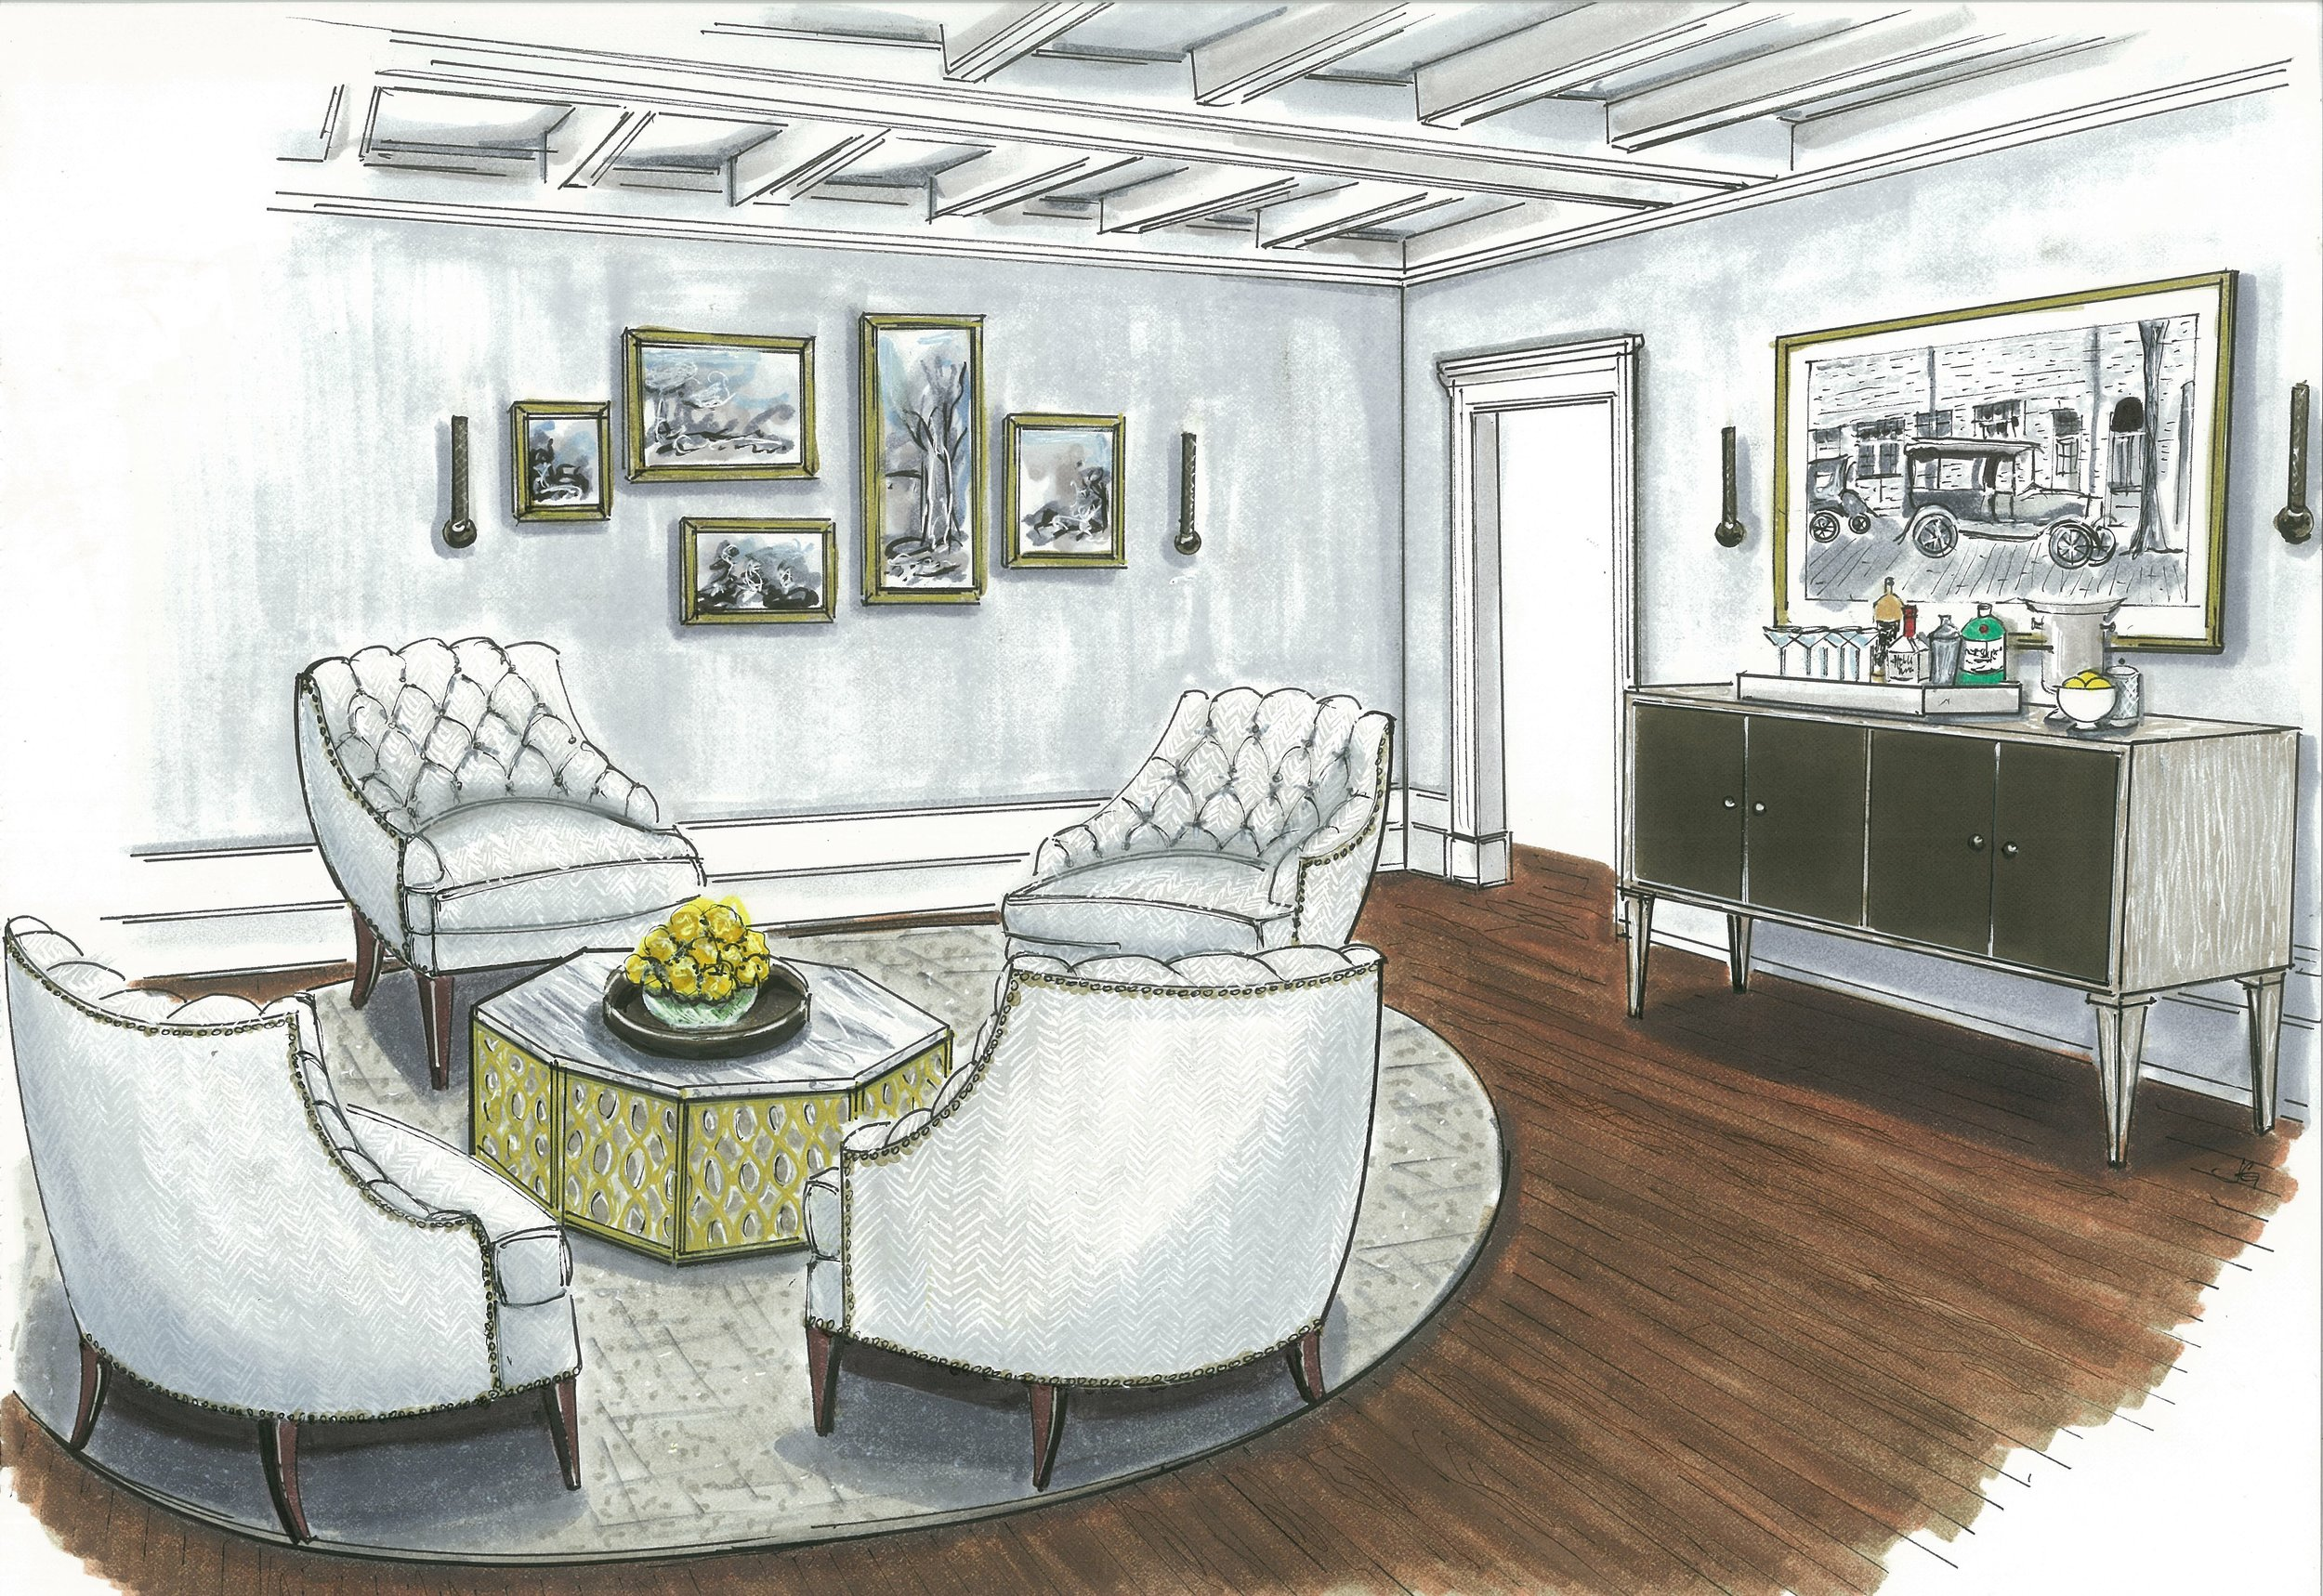 {The sophisticated and inviting conversation area showcases a gallery wall, featuring treasured photography prints. Rendering by  Jane Gianarelli .}